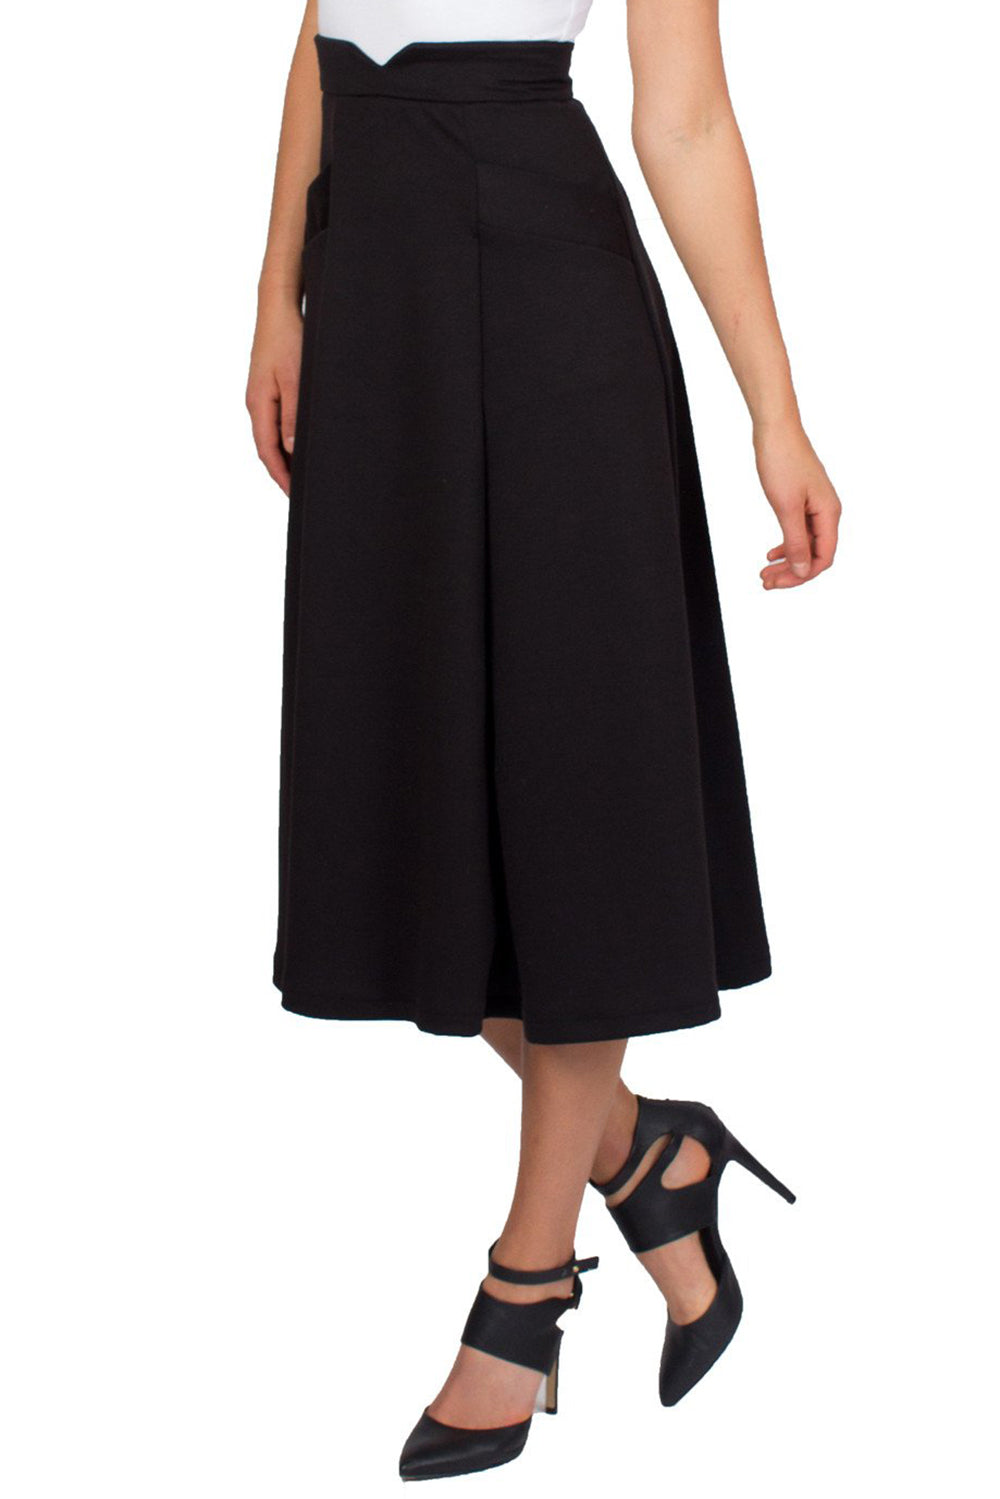 Black Swing Midi Skirt With Slant Pockets and Notch Detail on Waist - Tetiana K - 3